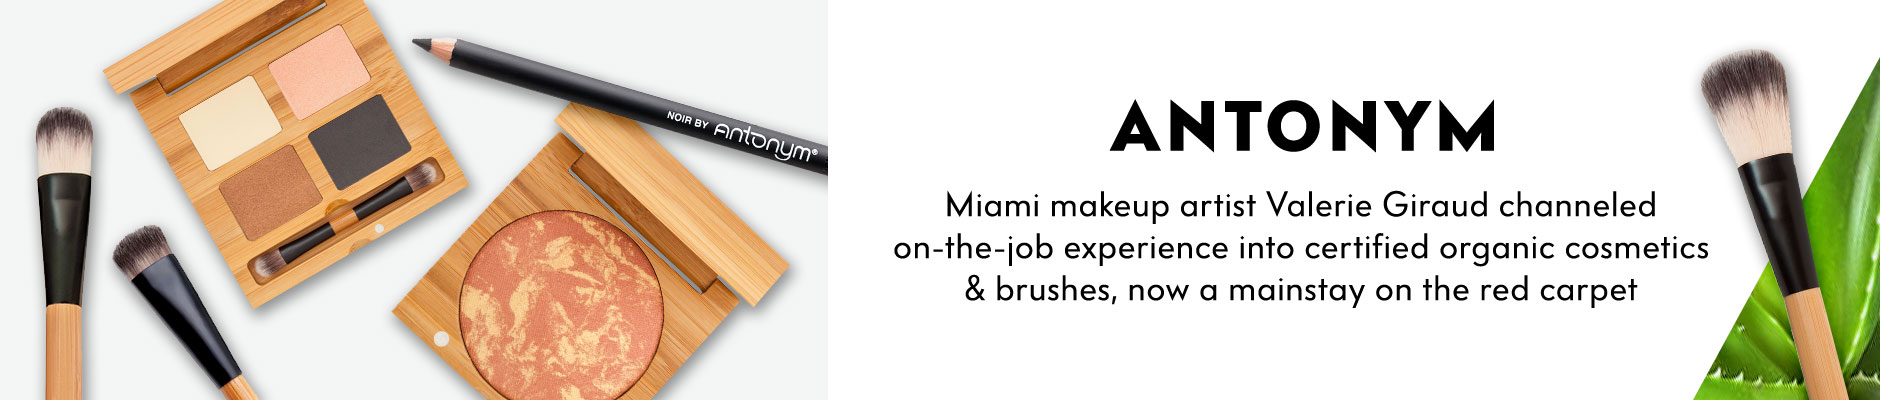 Antonym - Miami makeup artist Valerie Giraud channeled on-the-job experience into certified organic cosmetics & brushes, now a mainstay on the red carpet